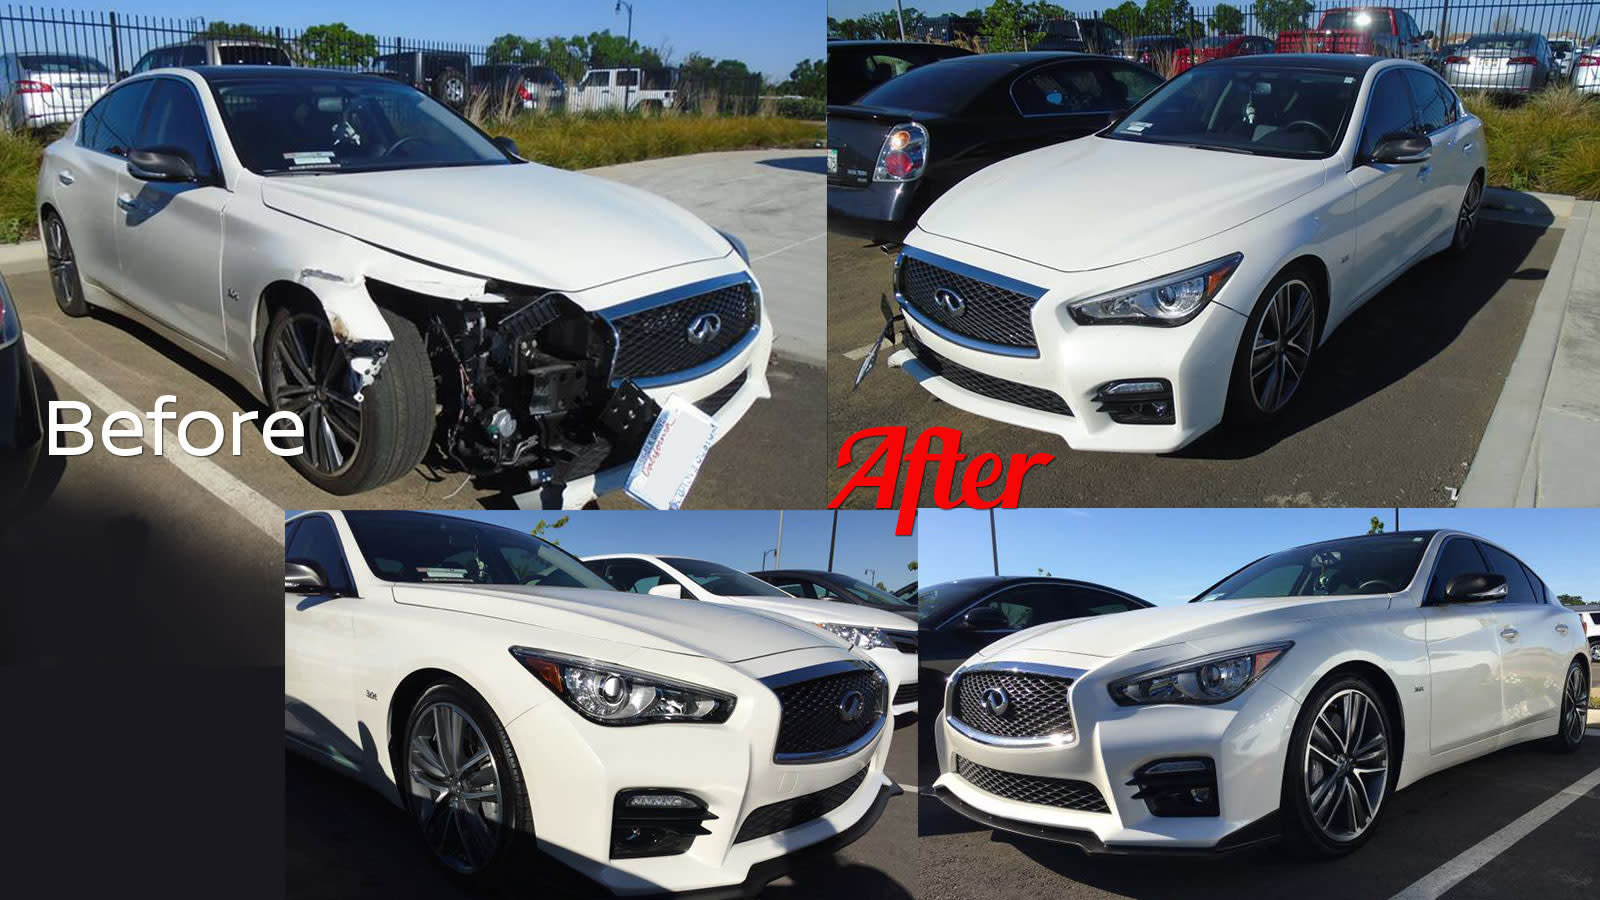 Before and after Infiniti sedan repaired